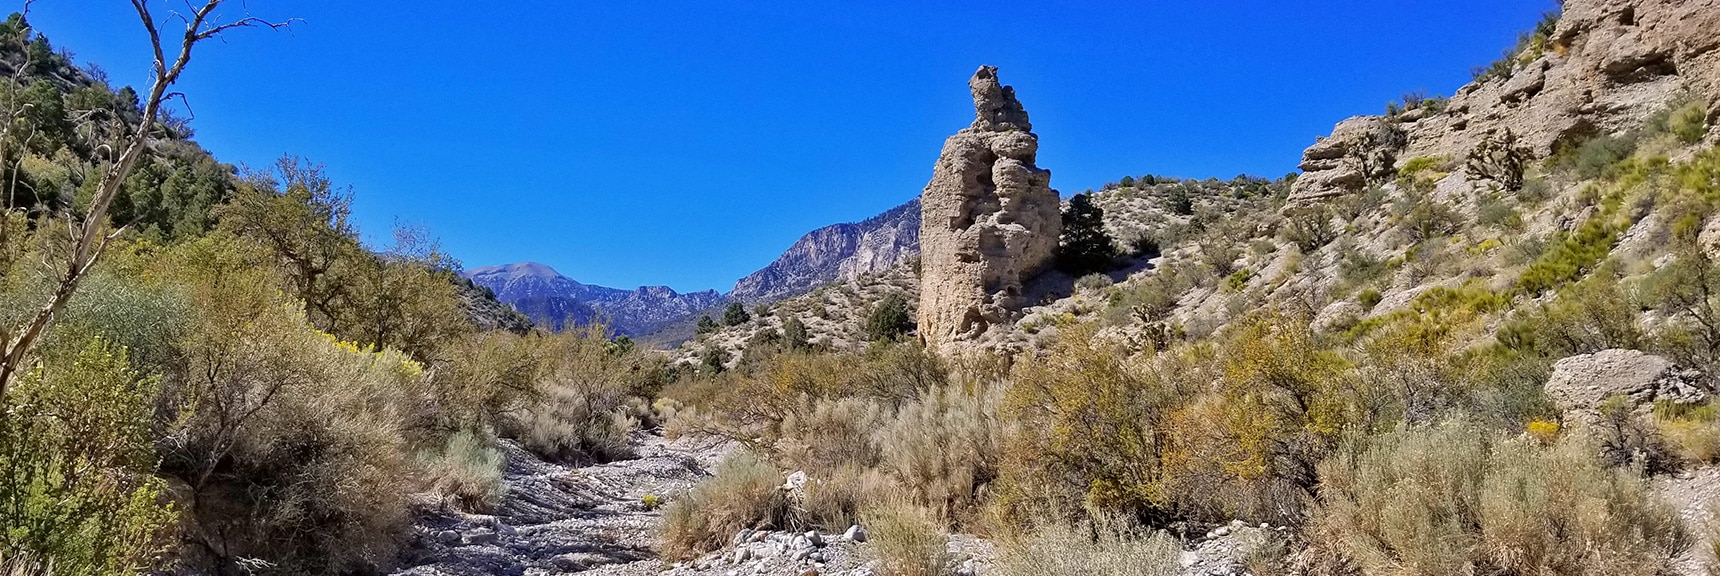 Elaborate Rock Formations in the Canyon. Charleston Peak Visible Ahead | Harris Springs Canyon | Biking from Centennial Hills | Spring Mountains, Nevada